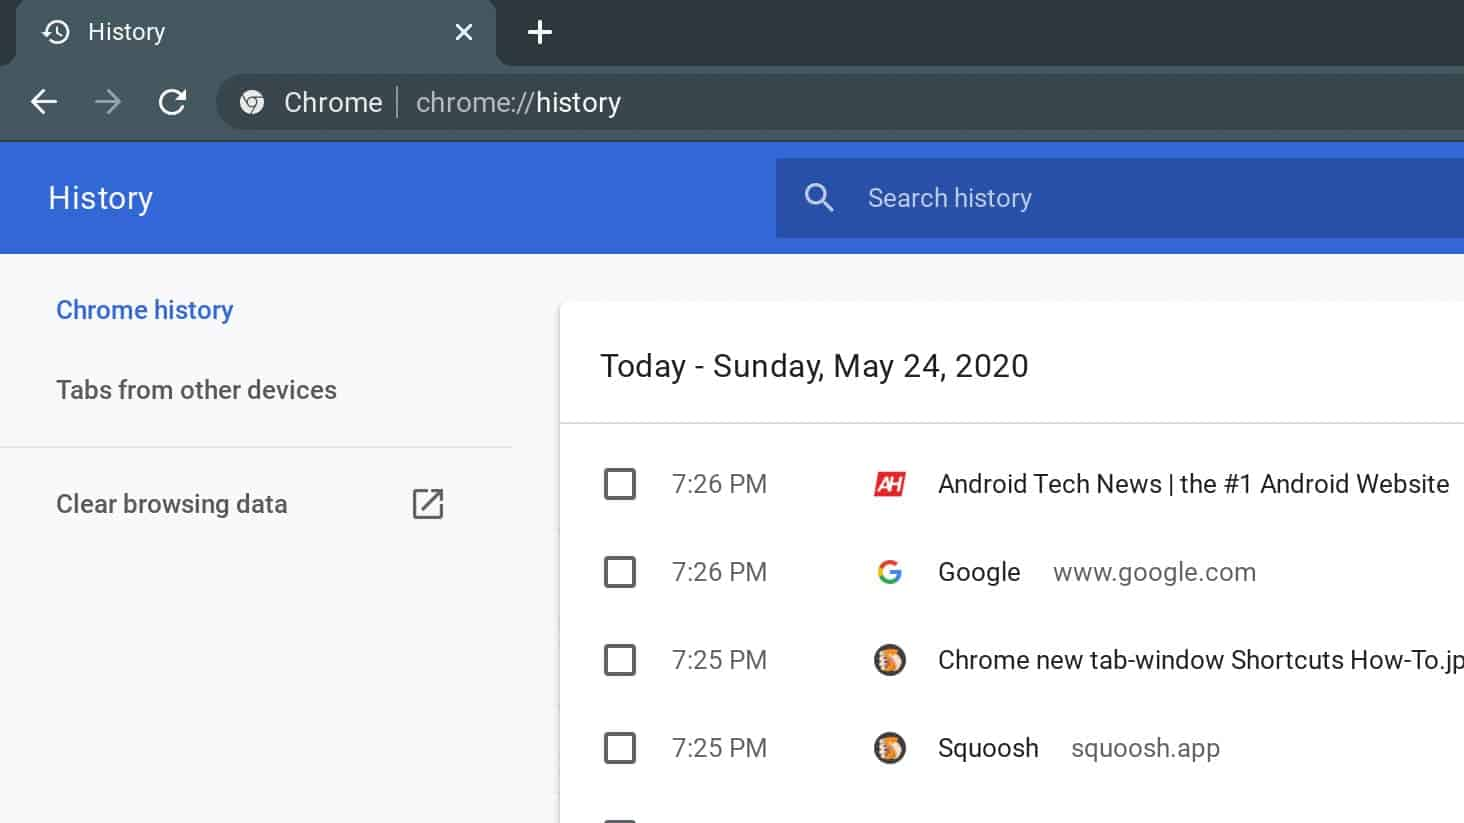 Chrome history Shortcuts How To